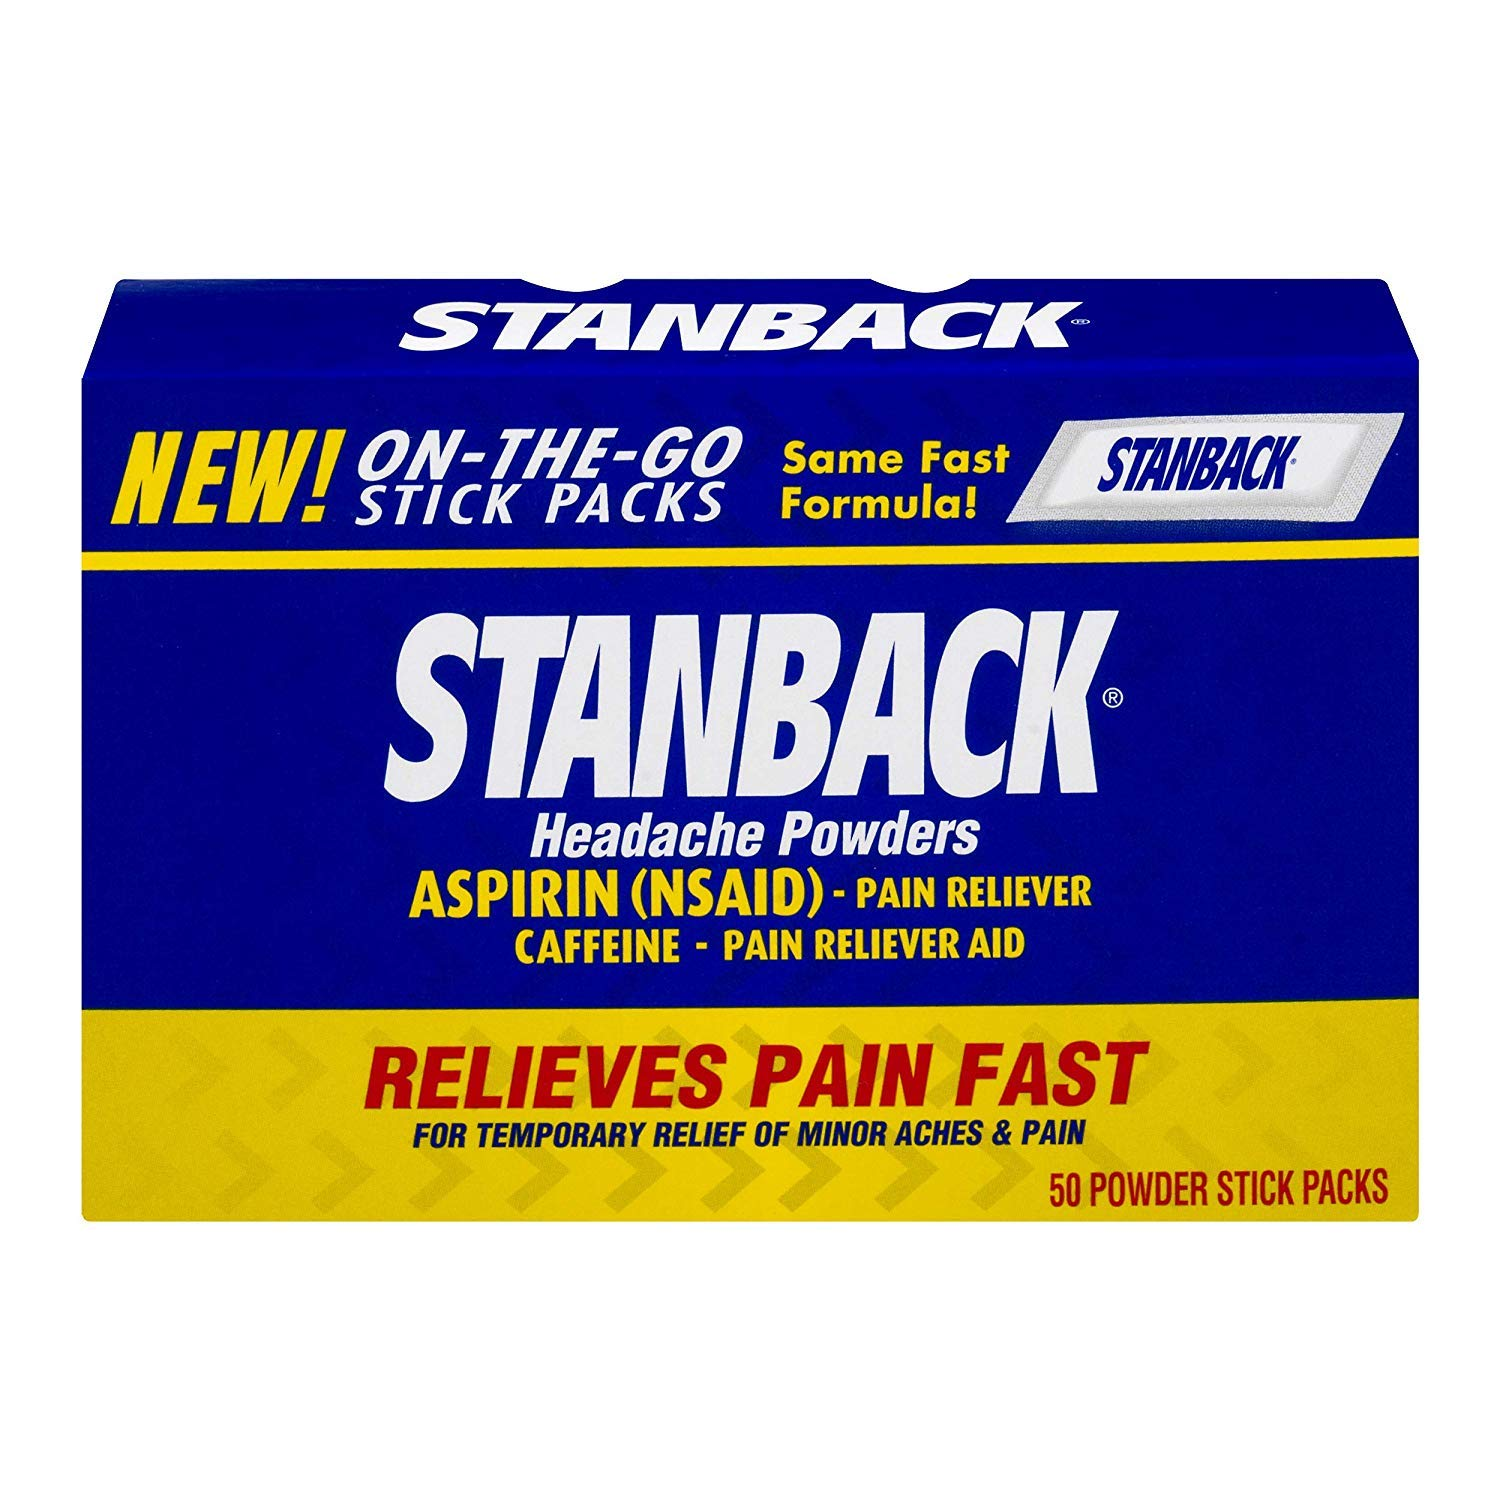 Stanback Headache Powders 50 Each (Pack of 6) by Stanback